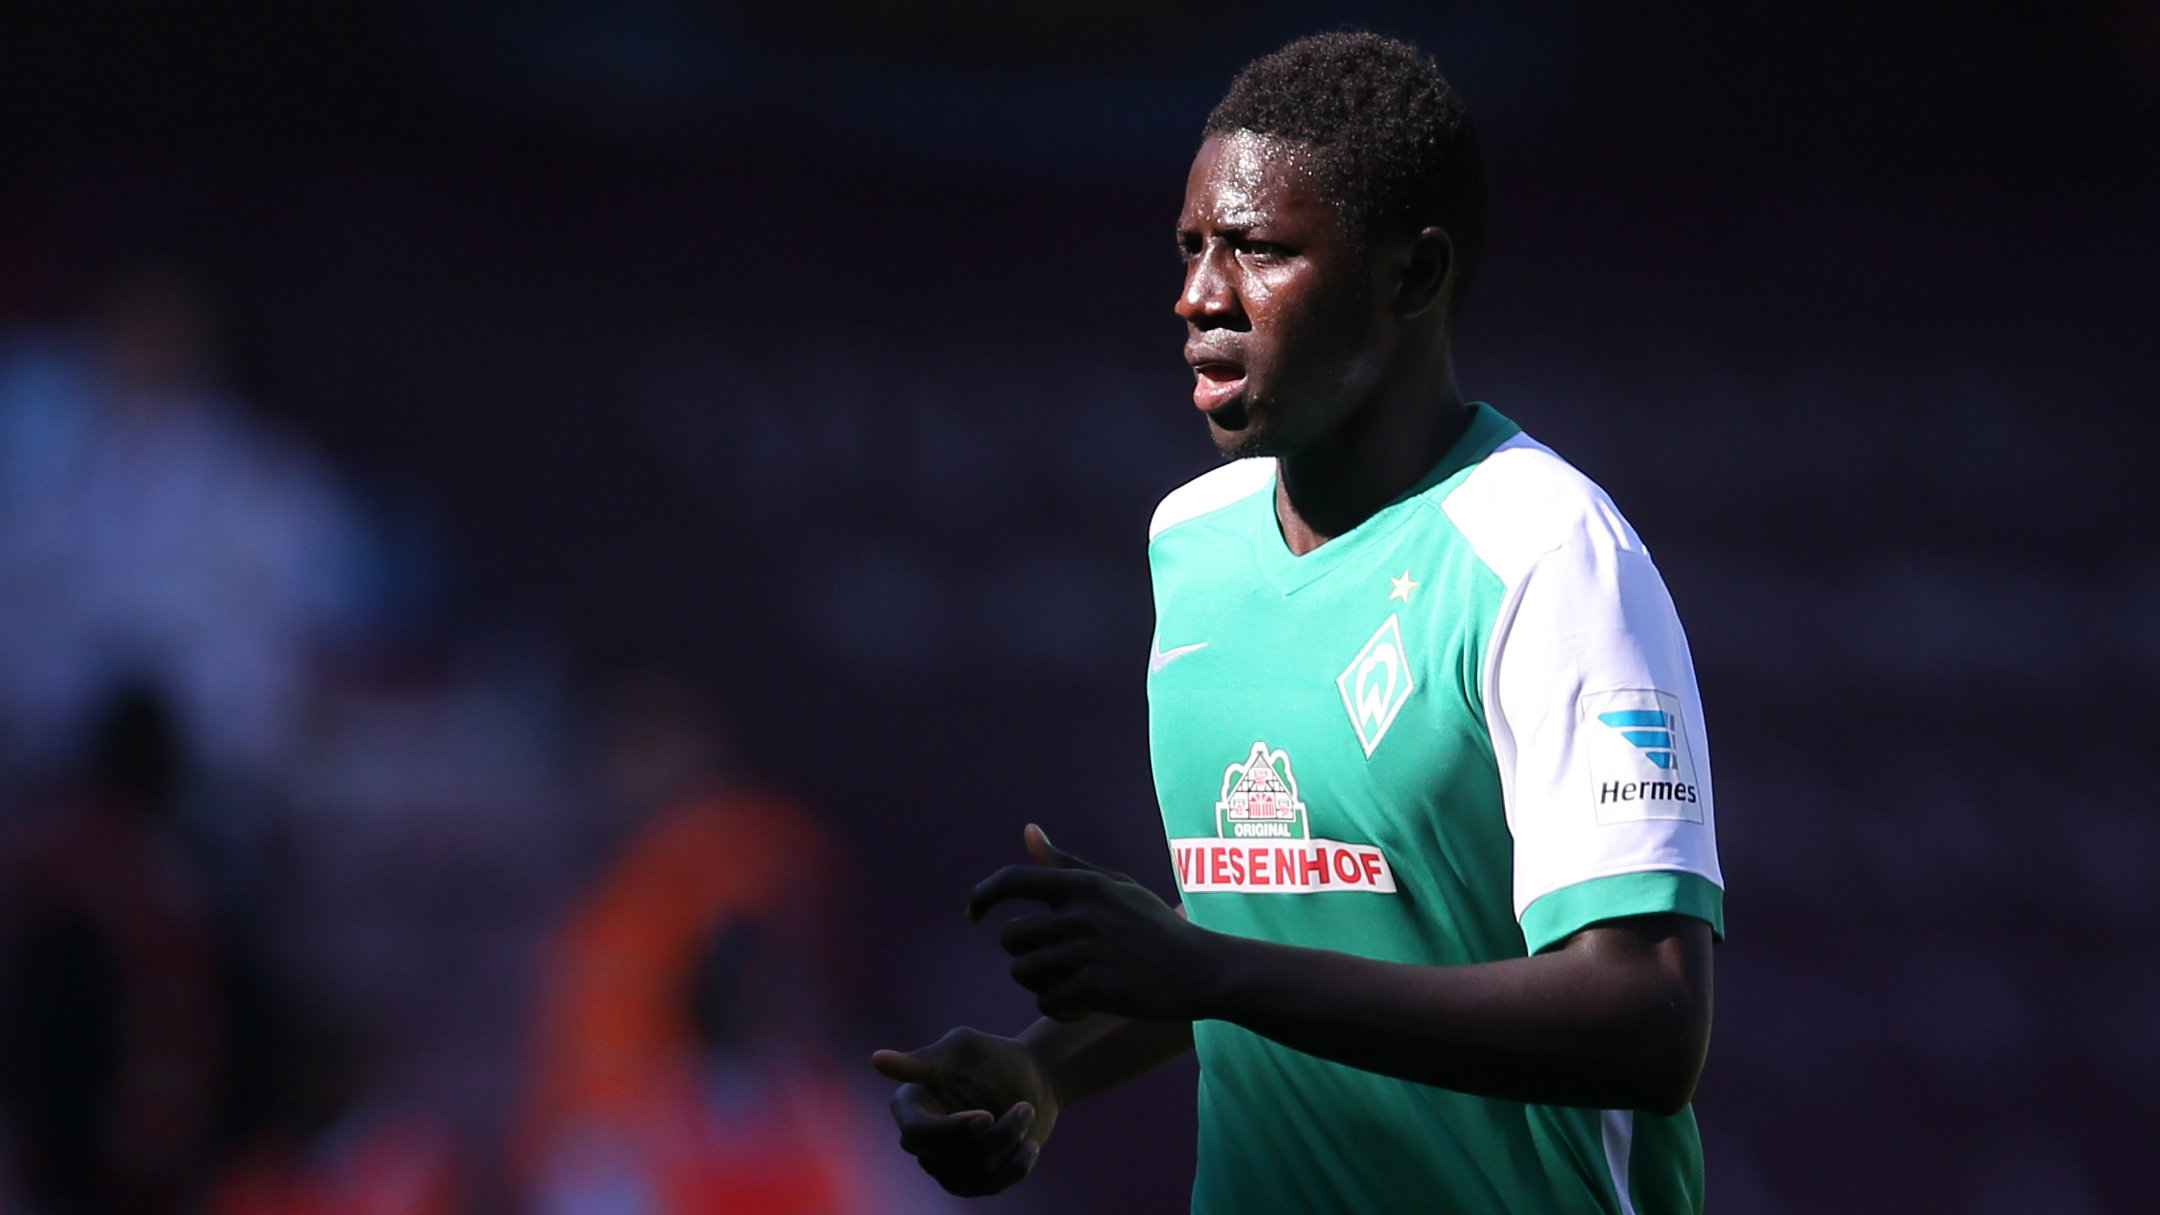 Football - West Ham United v Werder Bremen - Pre Season Friendly - Upton Park - 2/8/15 Werder Bremen's Ousman Manneh during the match